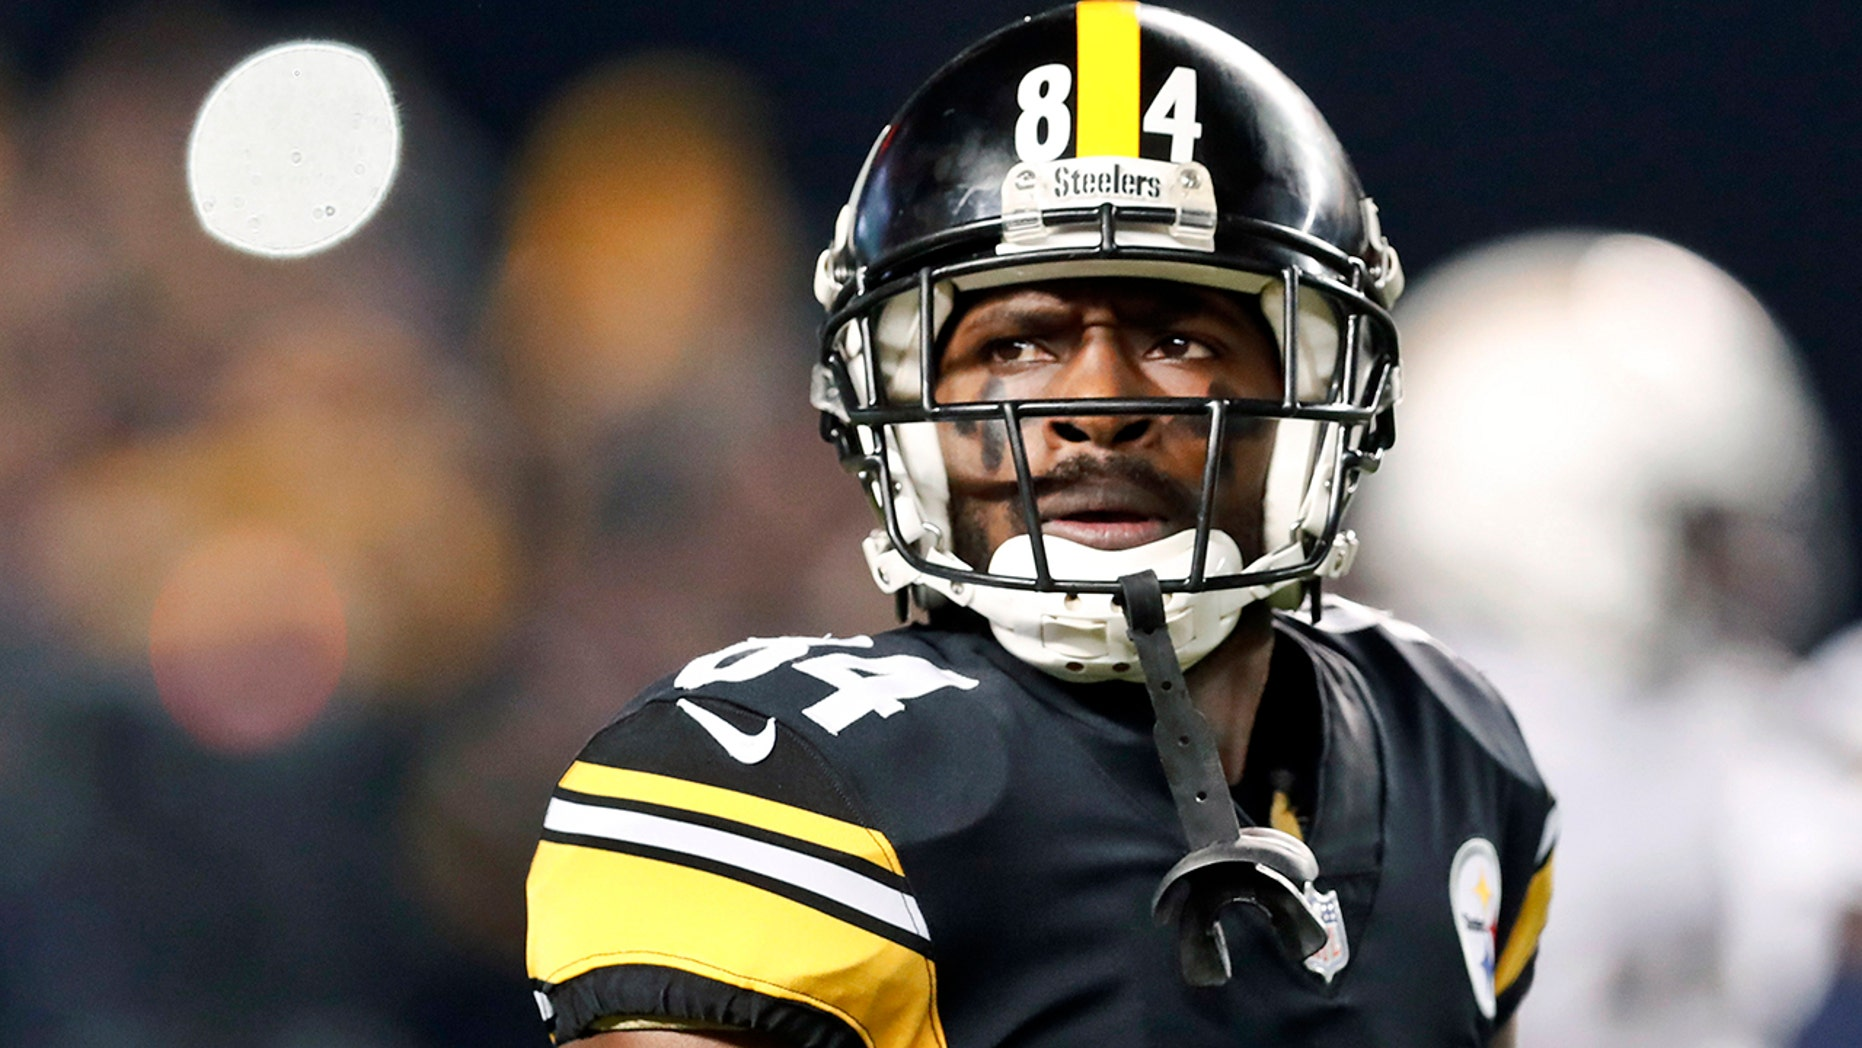 Antonio Brown's Instagram Live Video Hints At Trade To This Team